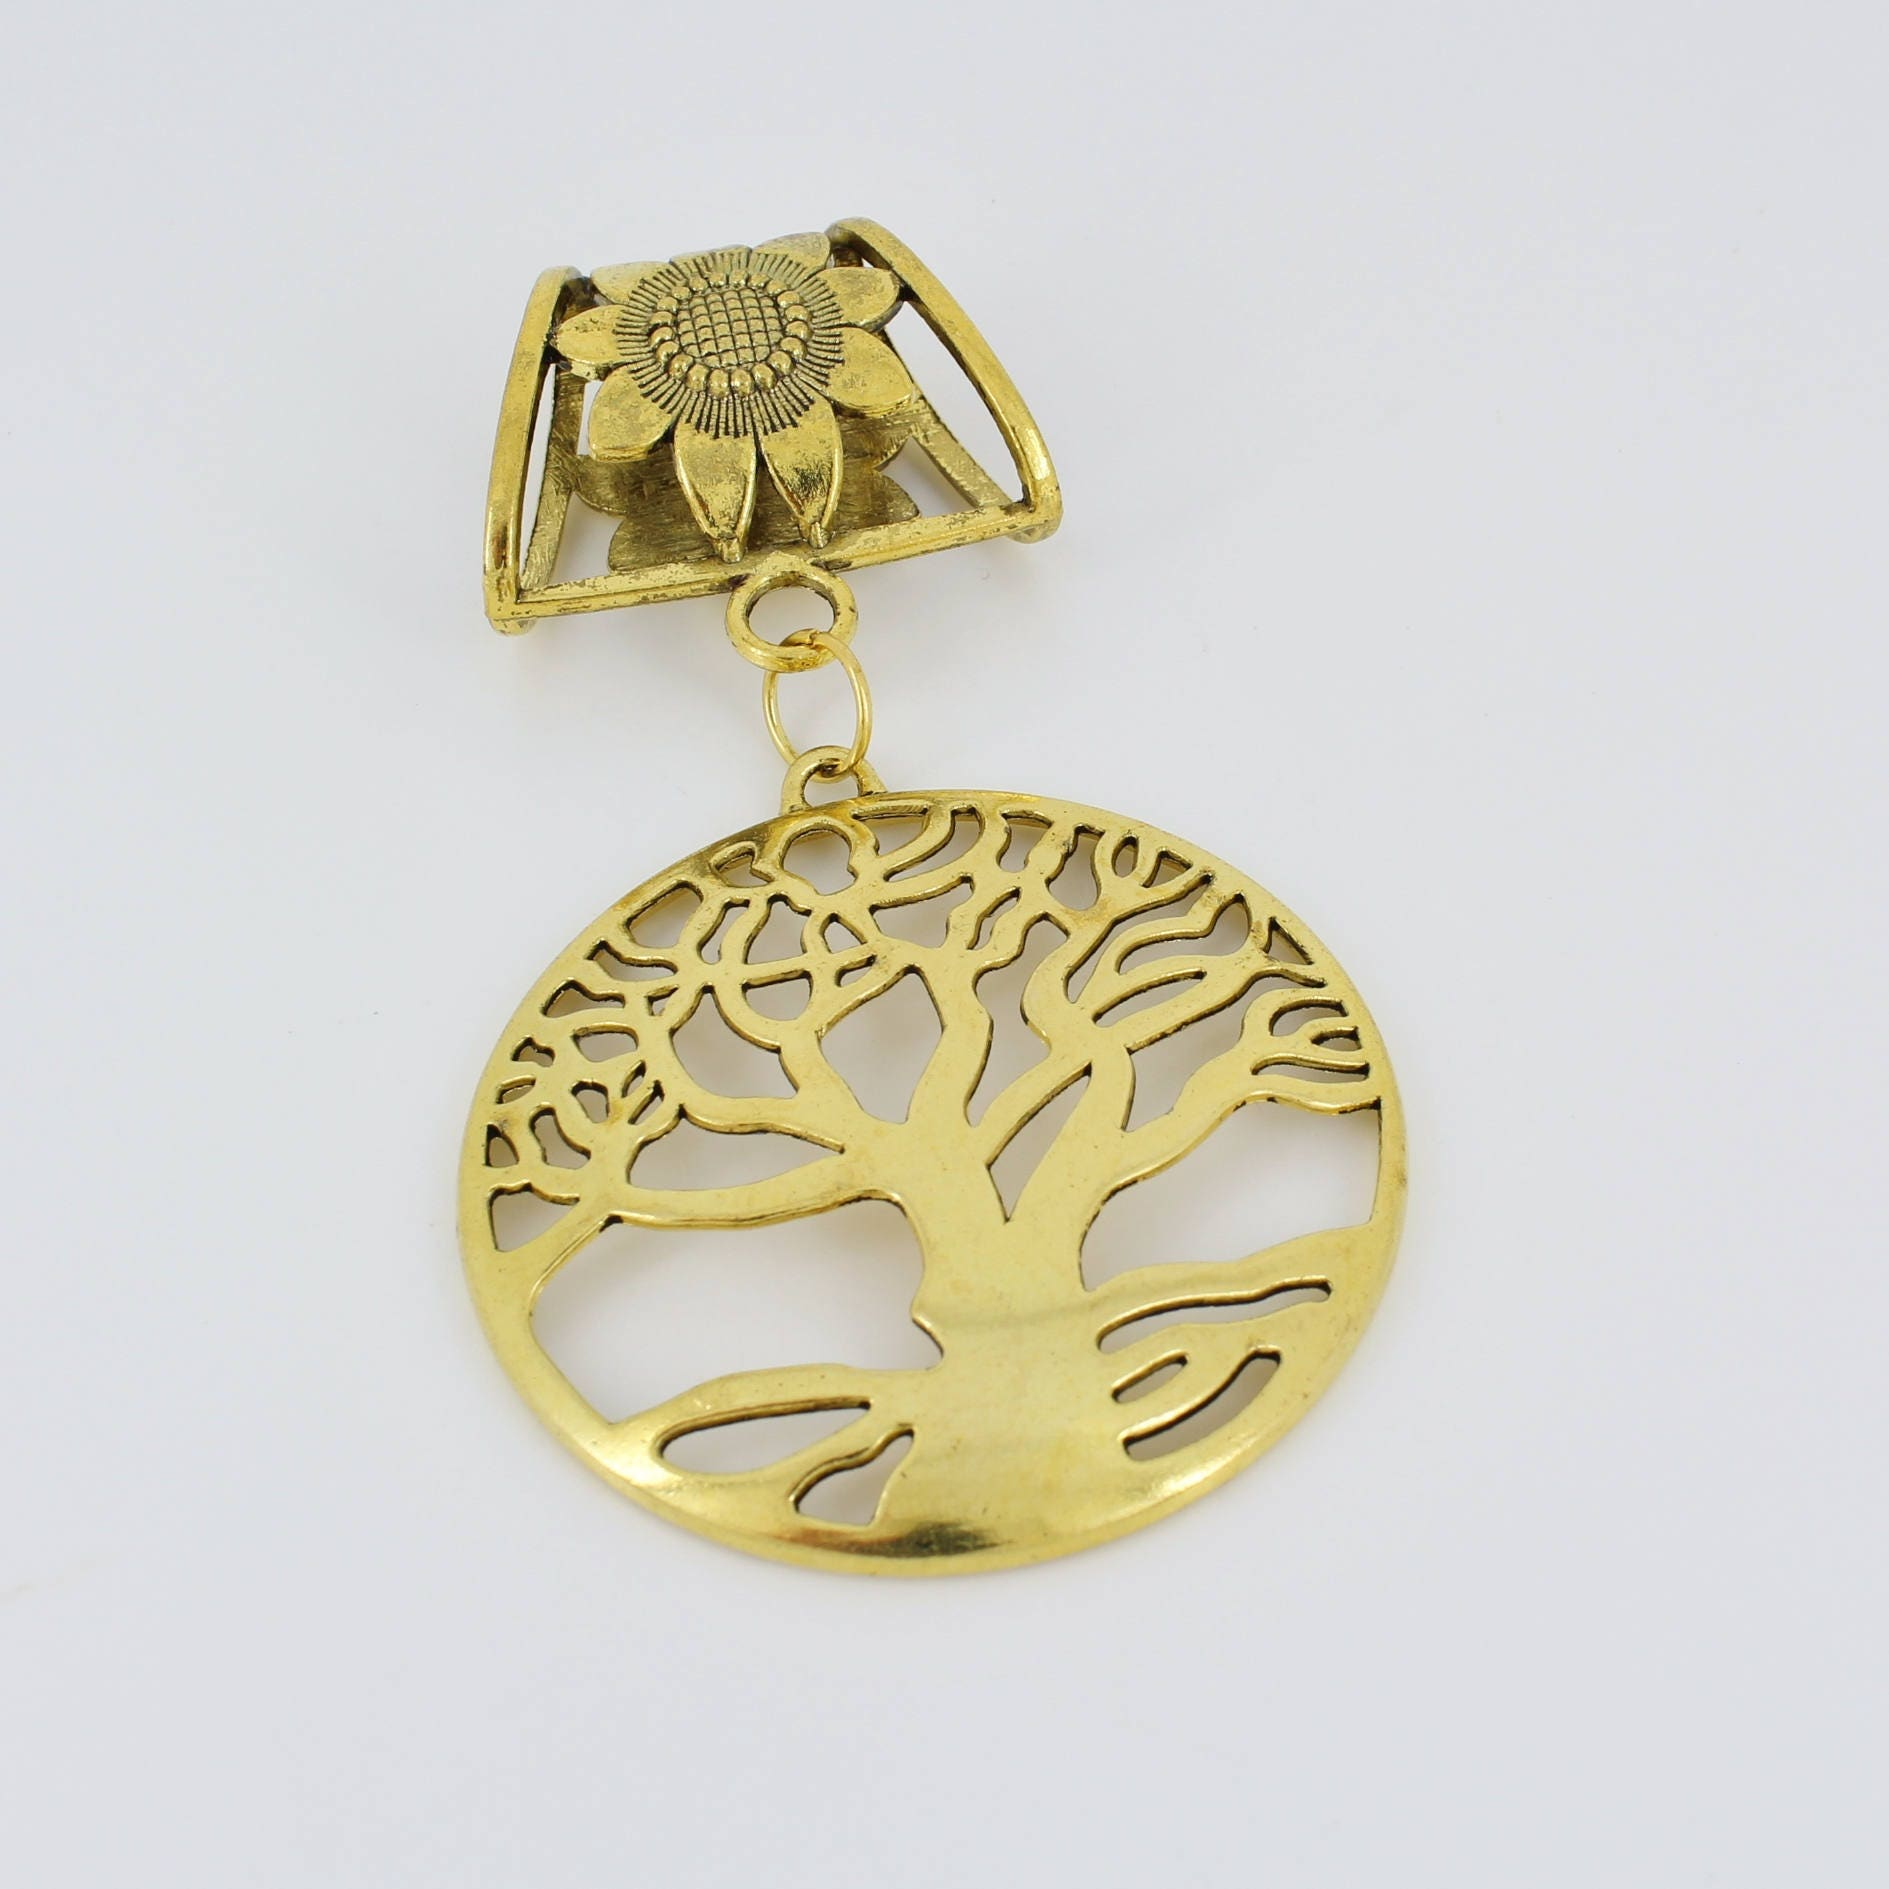 Tree,of,Life,Scarf,Pendant,~,Antique,Silver,Accessory~,Charm,Accessories,scarf_charm,scarf_accessory,scarf_jewelry,scarf_slide,tree_of_life,nature_jewelry,tree_pendant,tree_jewelry,gold_scarf_slide,sunflower_jewelry,large tree of life pendant,sunflower scarf slide